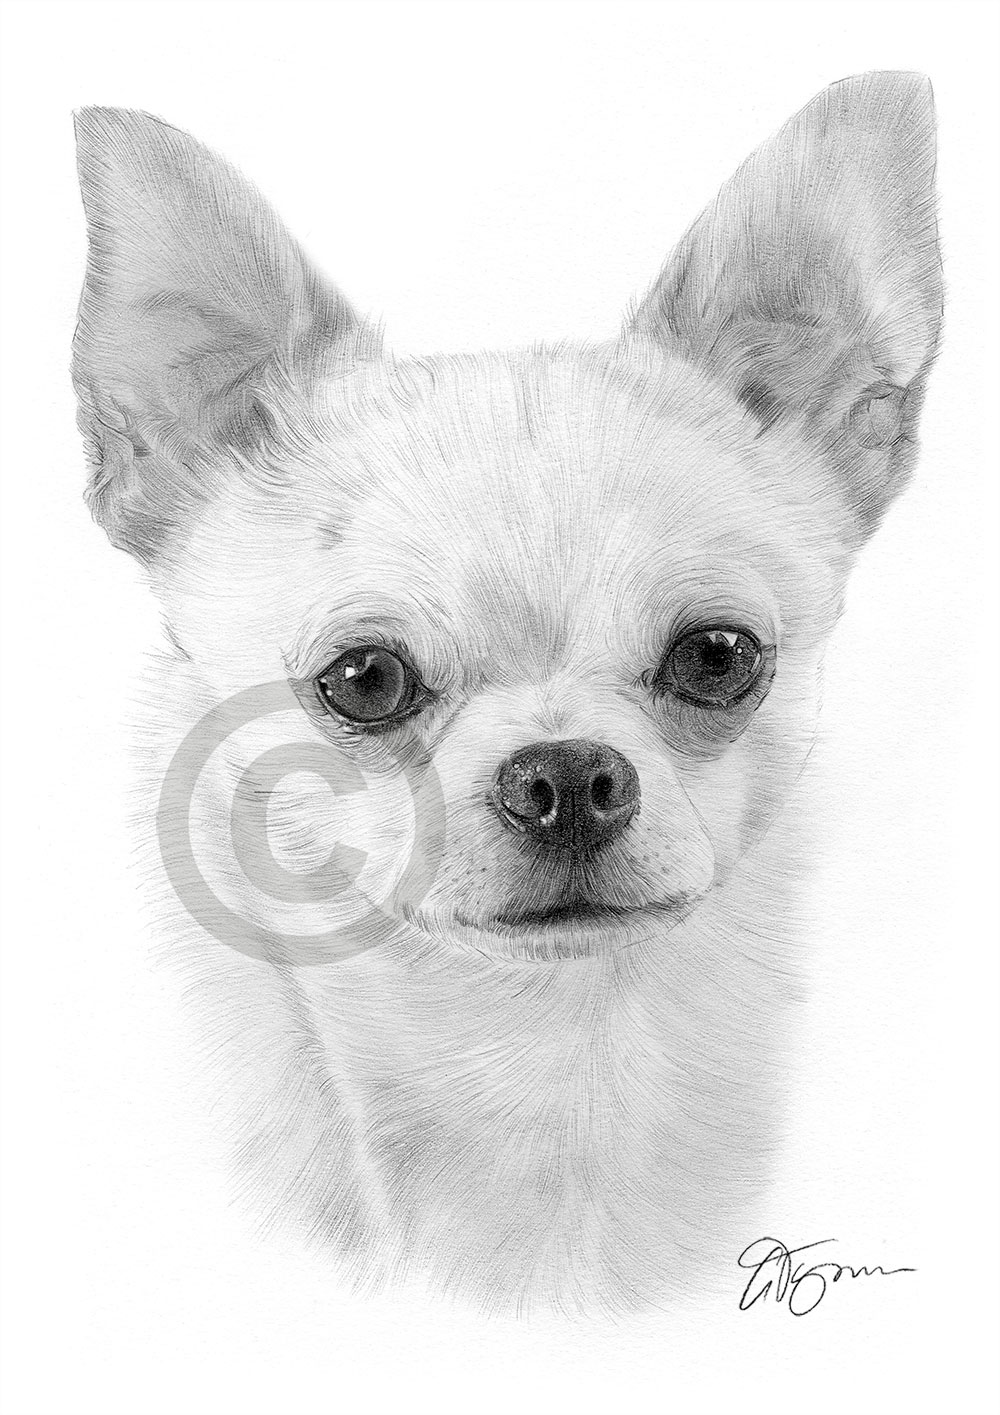 Young Chihuahua pencil drawing by artist Gary Tymon